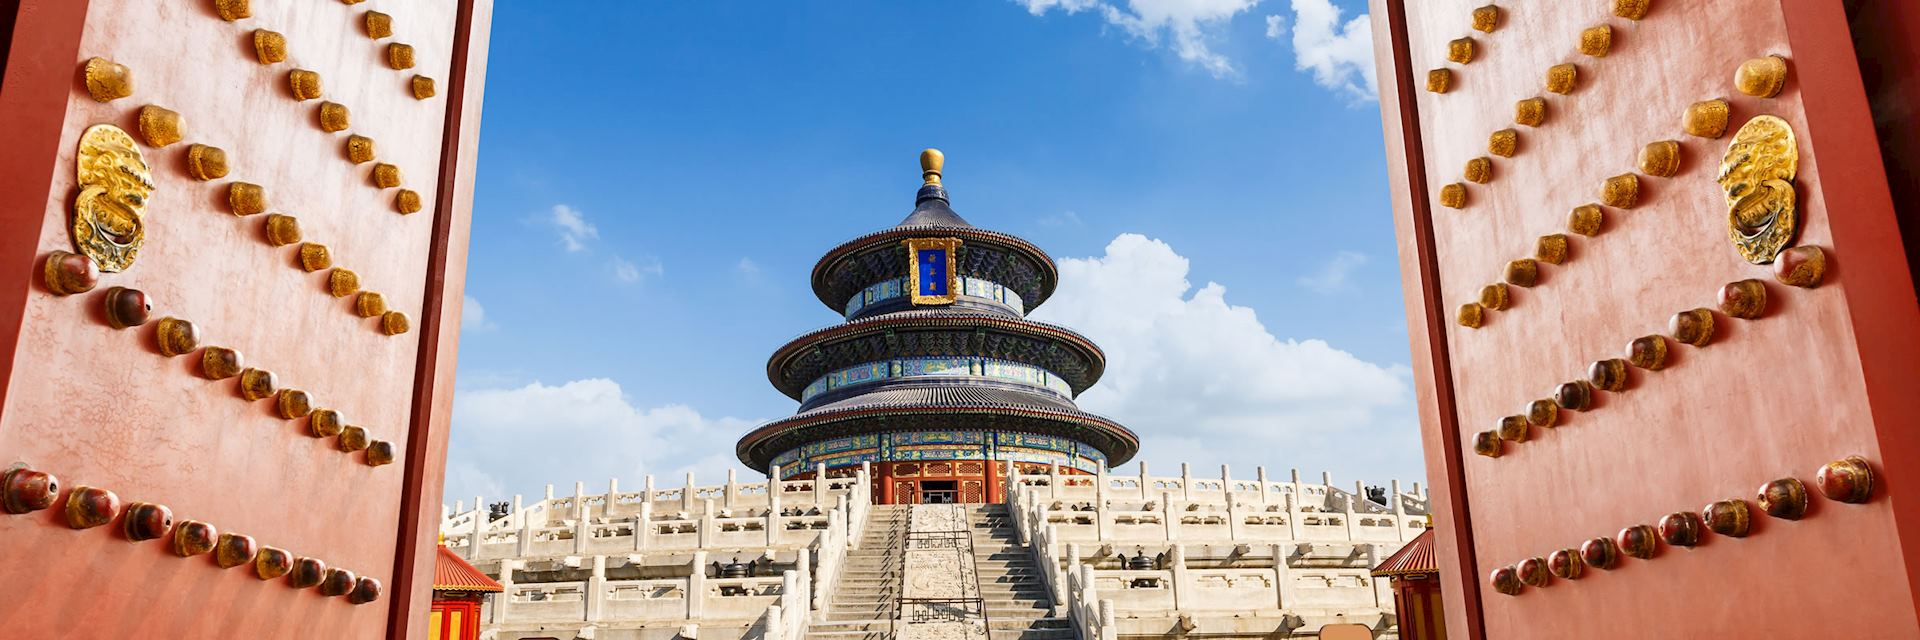 Temple of Heaven in Beijing